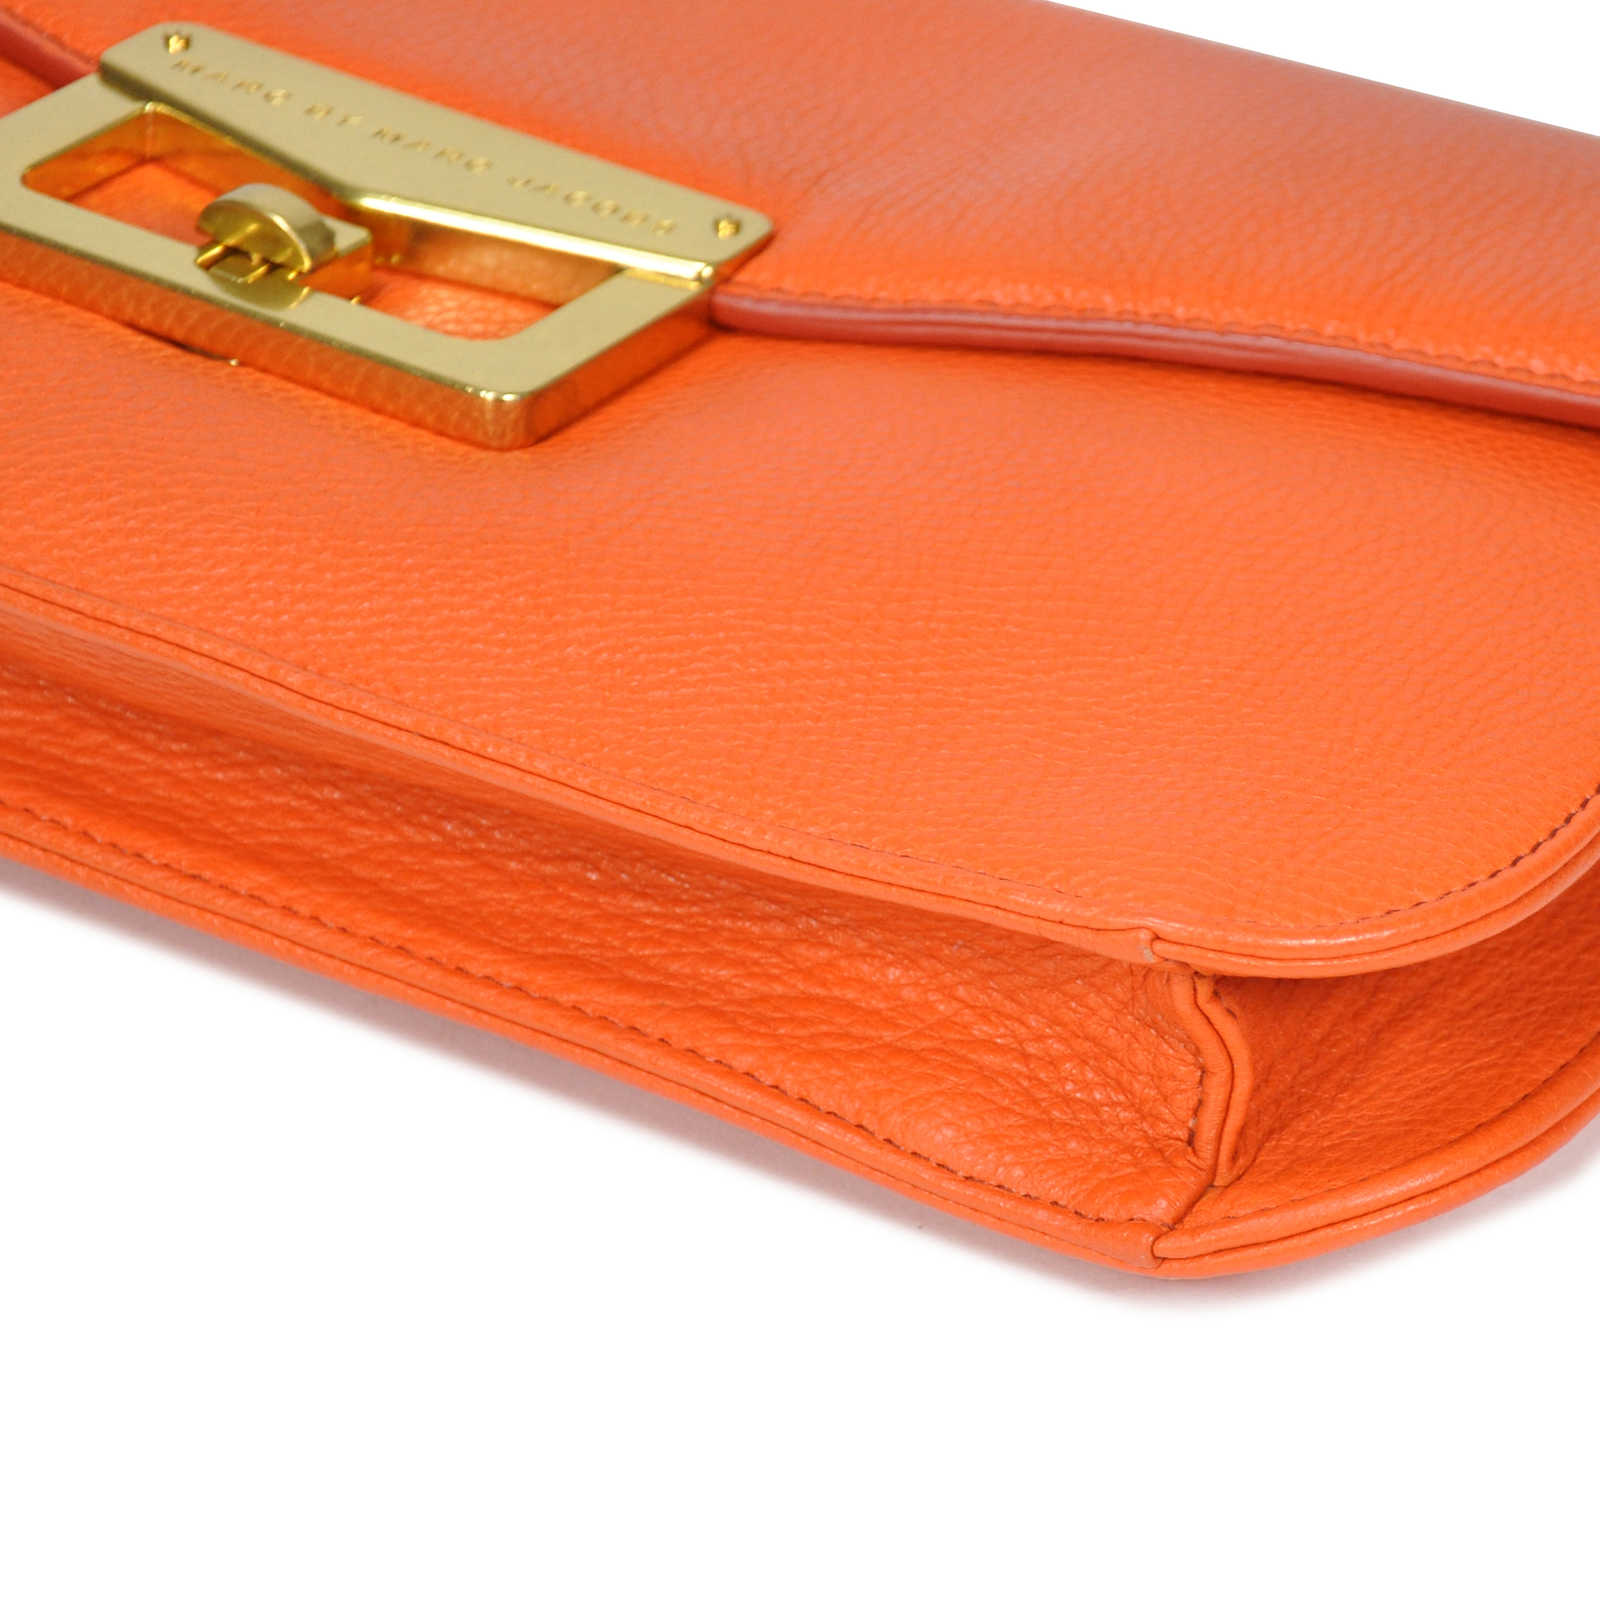 4735a8c2e0b ... Authentic Second Hand Marc by Marc Jacobs Bianca Clutch (PSS-233-00002)  ...